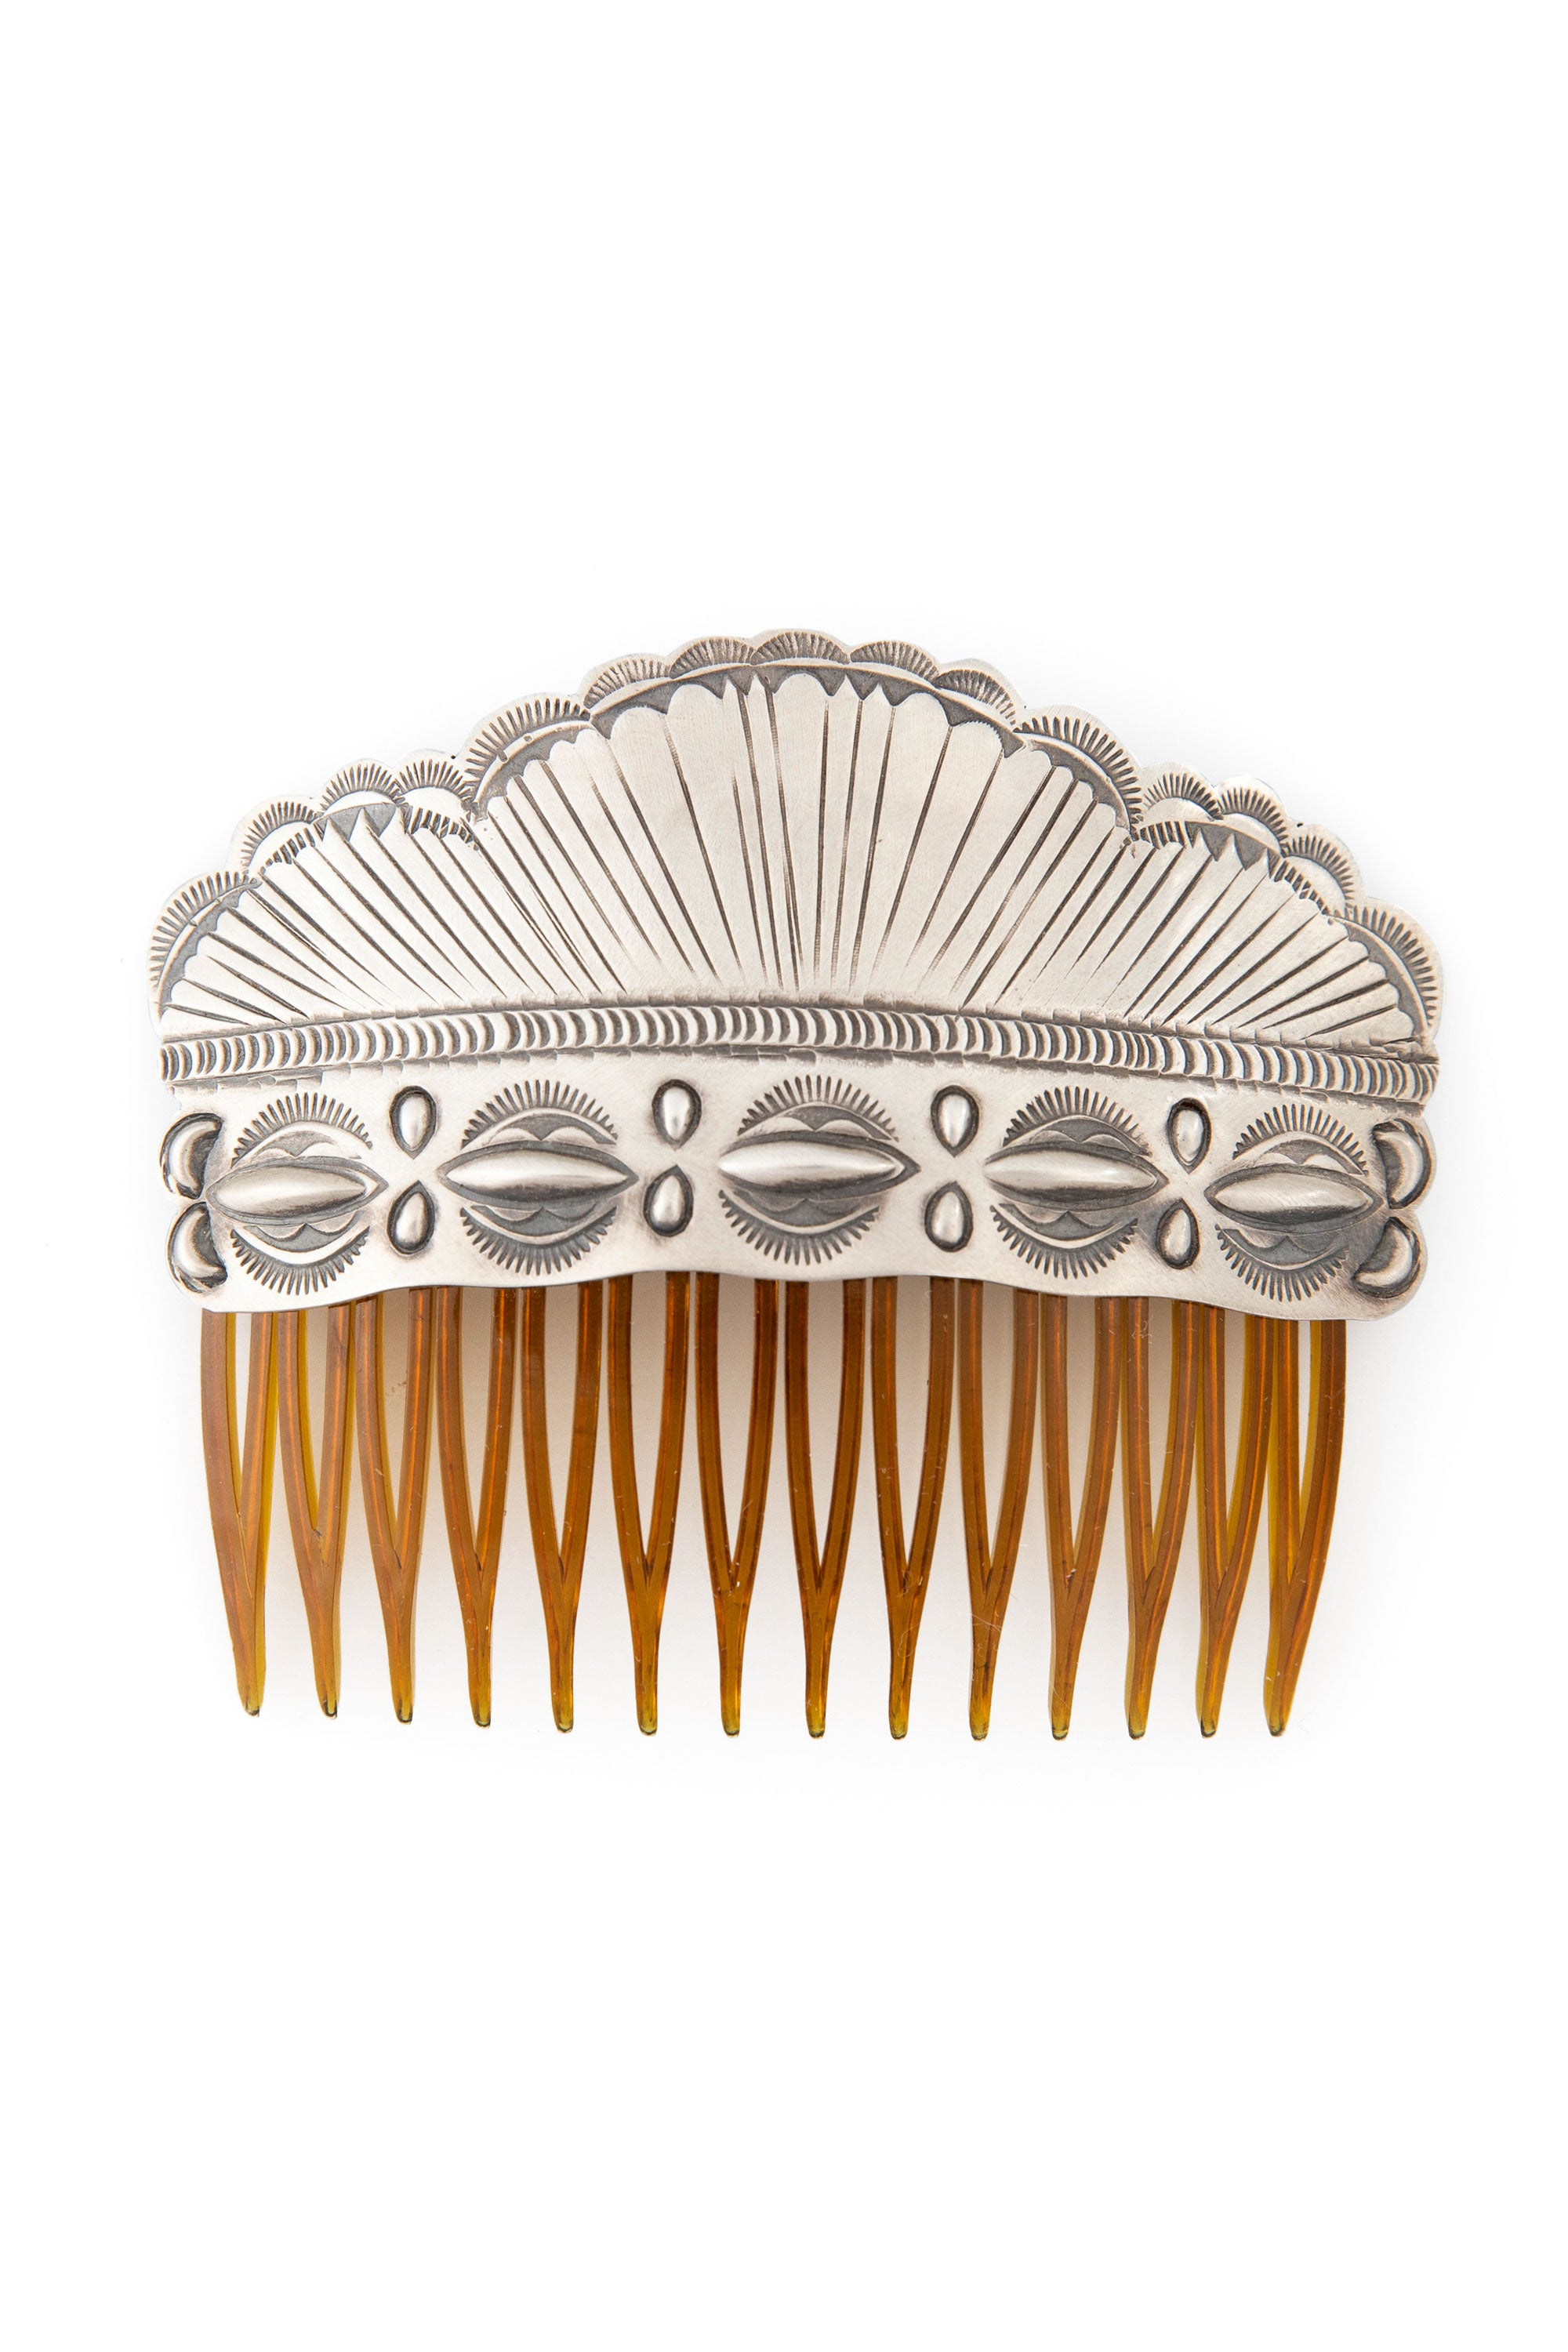 Miscellaneous, Sterling Silver, Repousse Hair Comb, 132